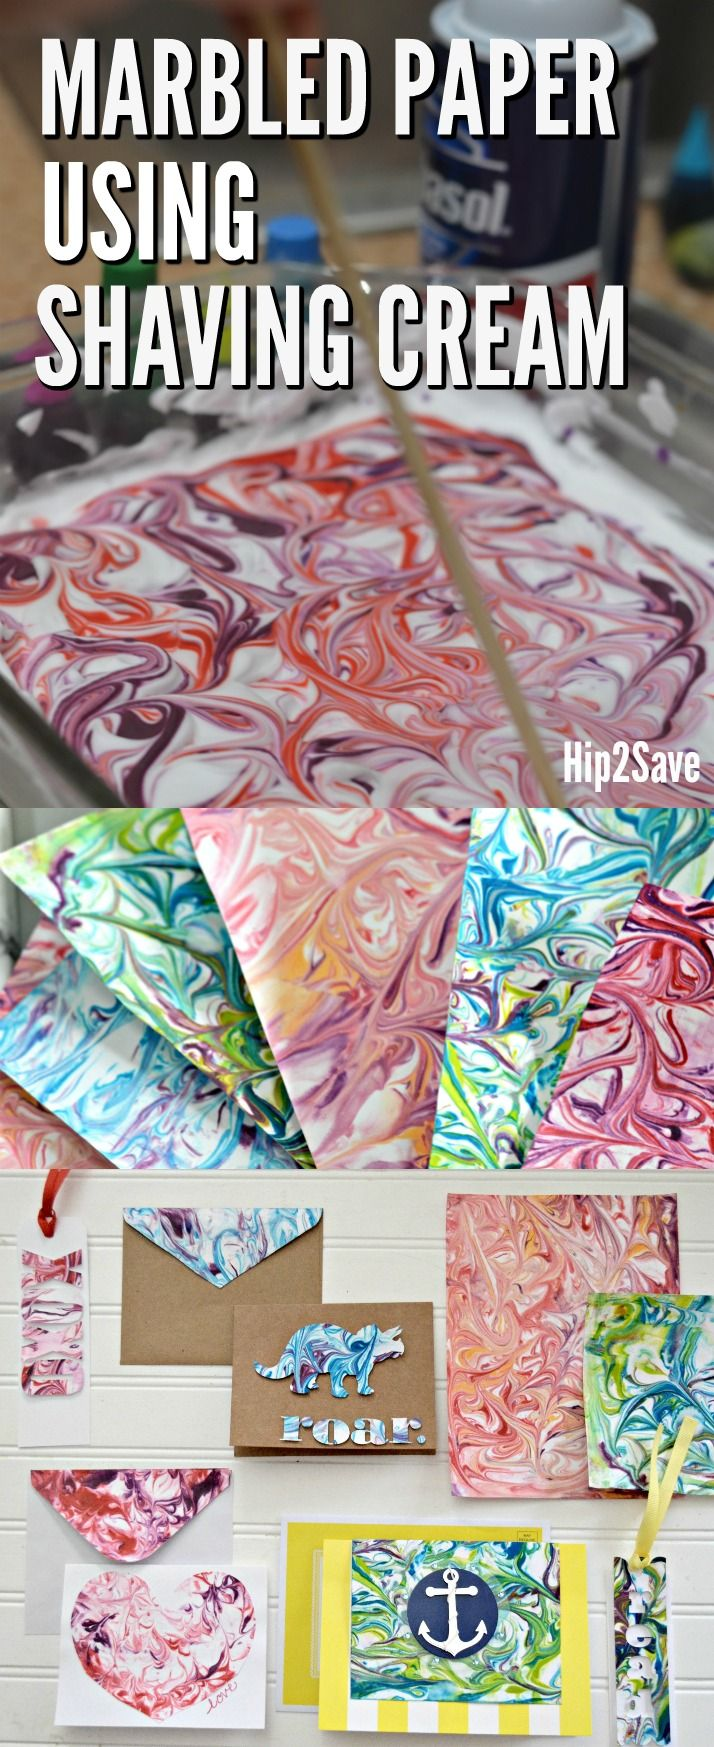 How to Marble Paper Using Shaving Cream (FUN Craft Idea!) - Hip2Save -   19 diy projects For Boys food coloring ideas